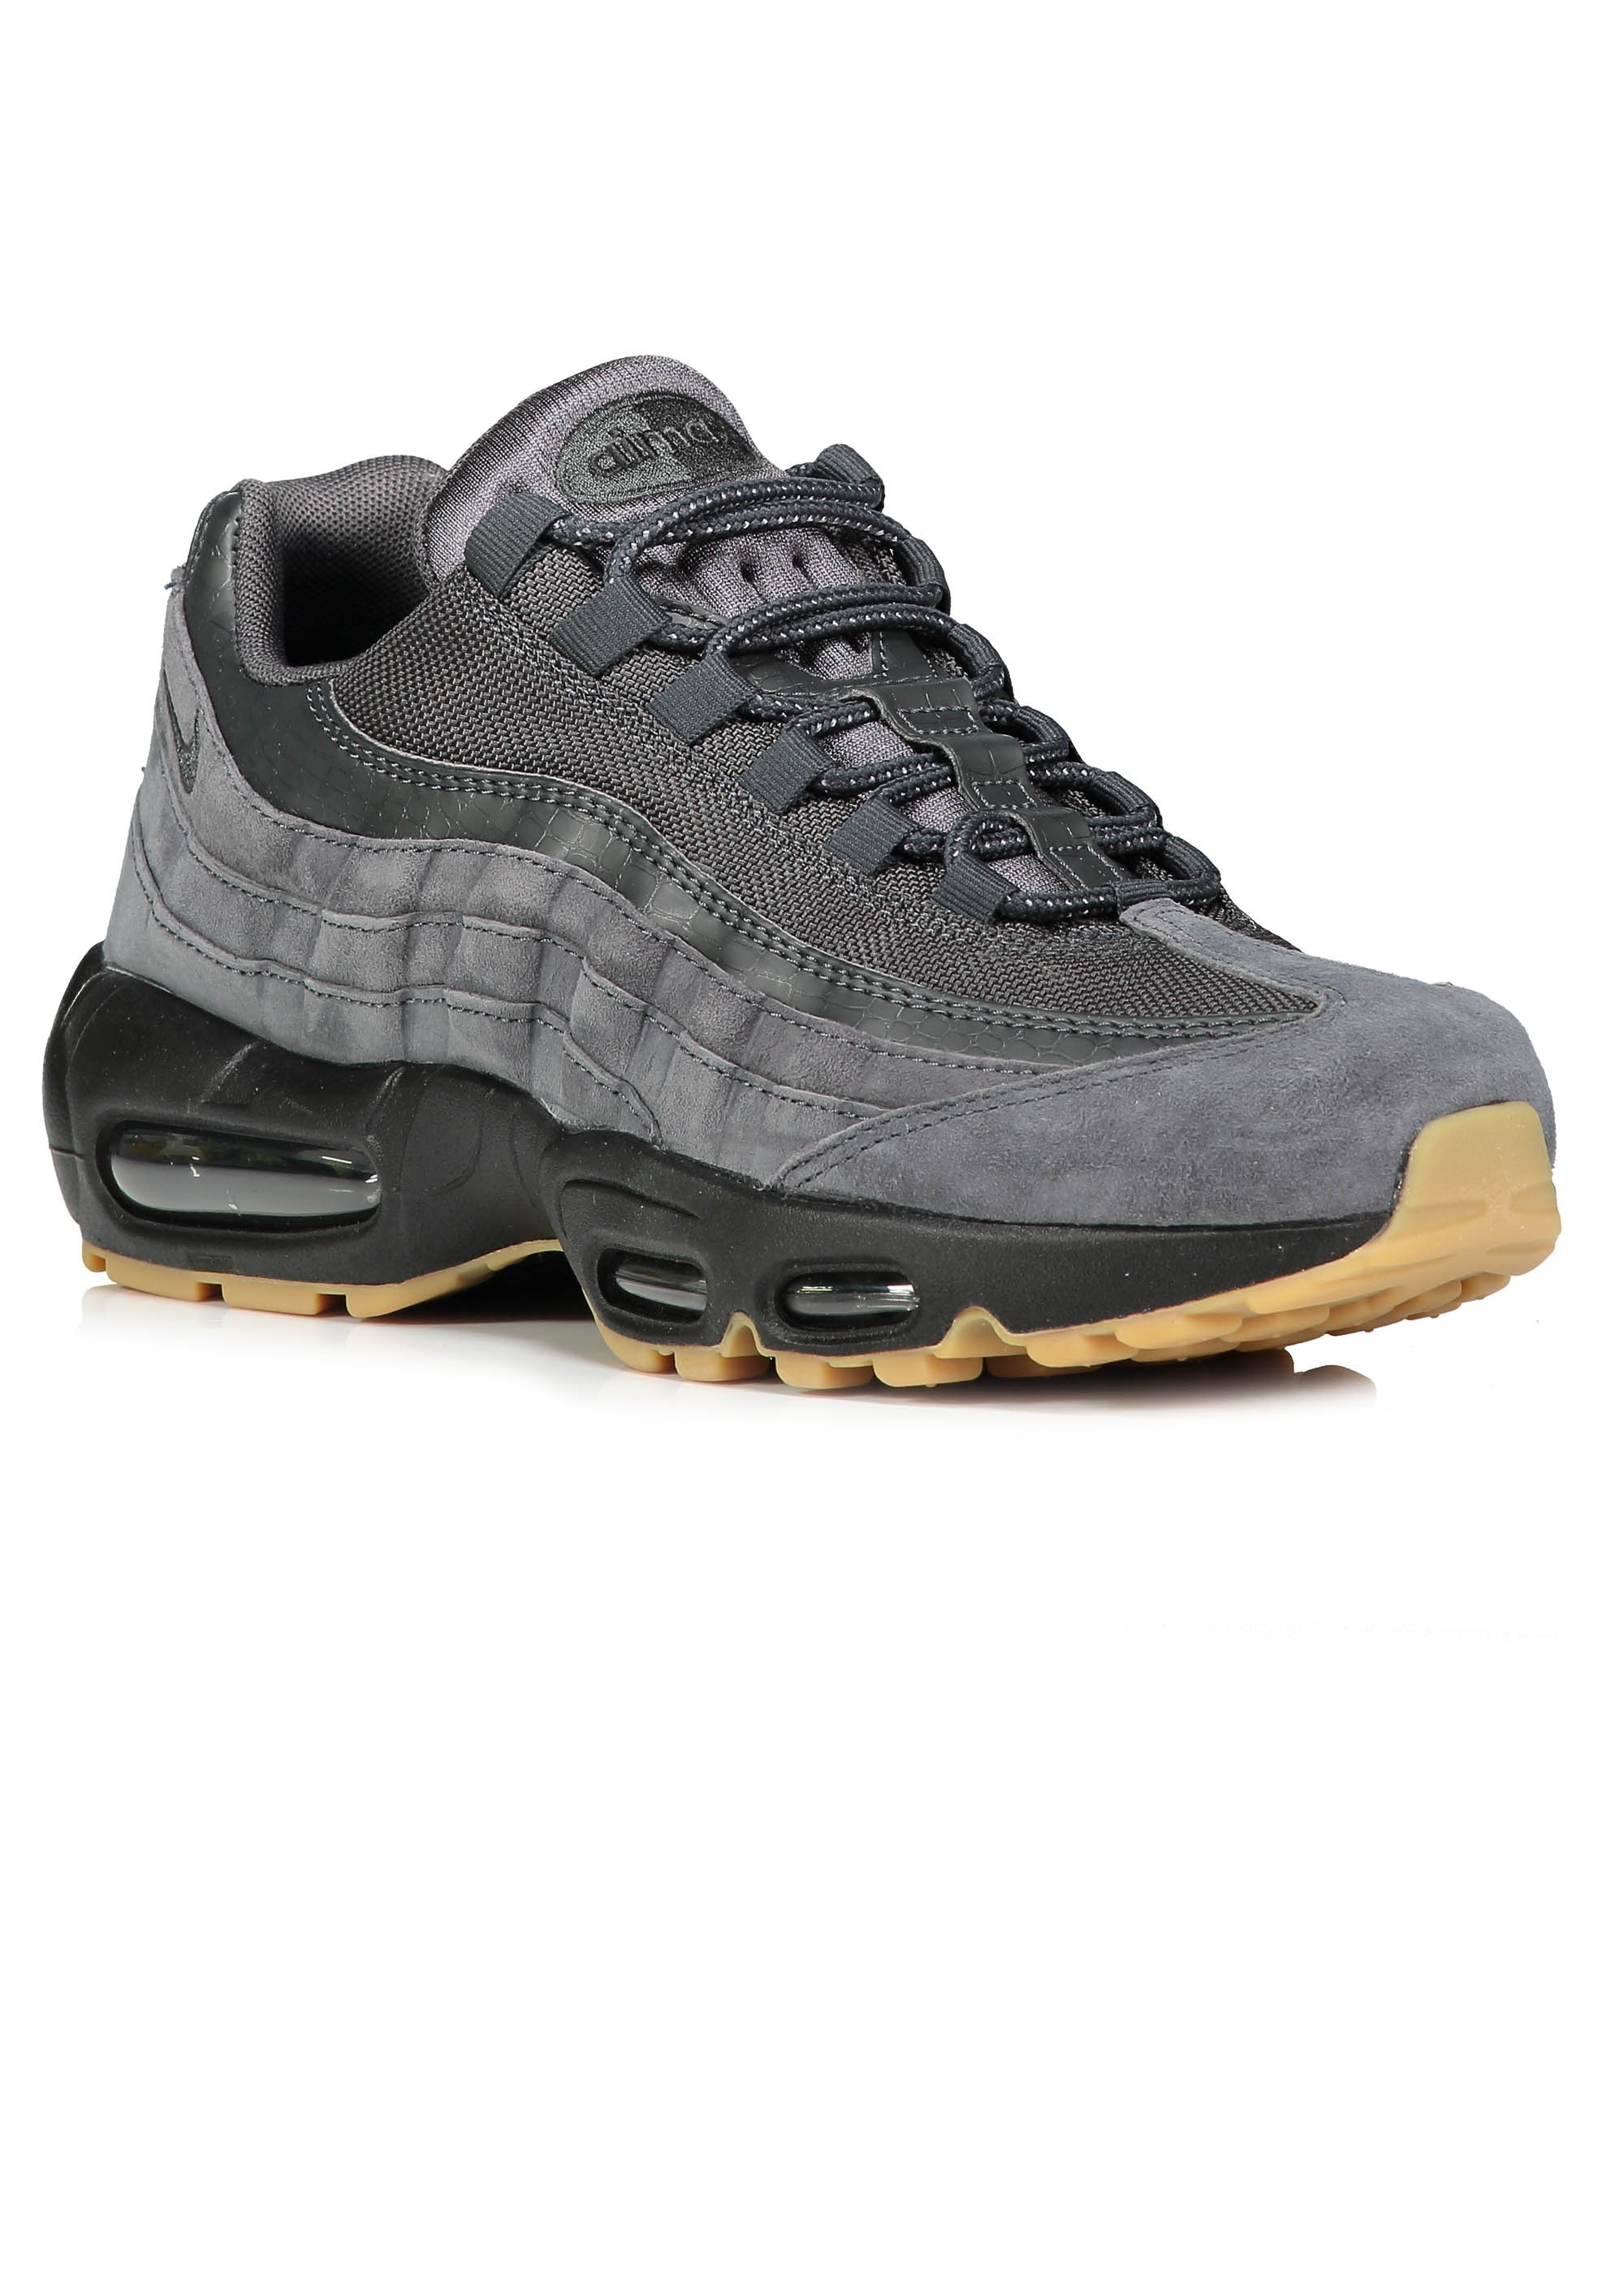 best service 4ee7d 6a14b Nike Footwear Air Max 95 SE - Anthracite